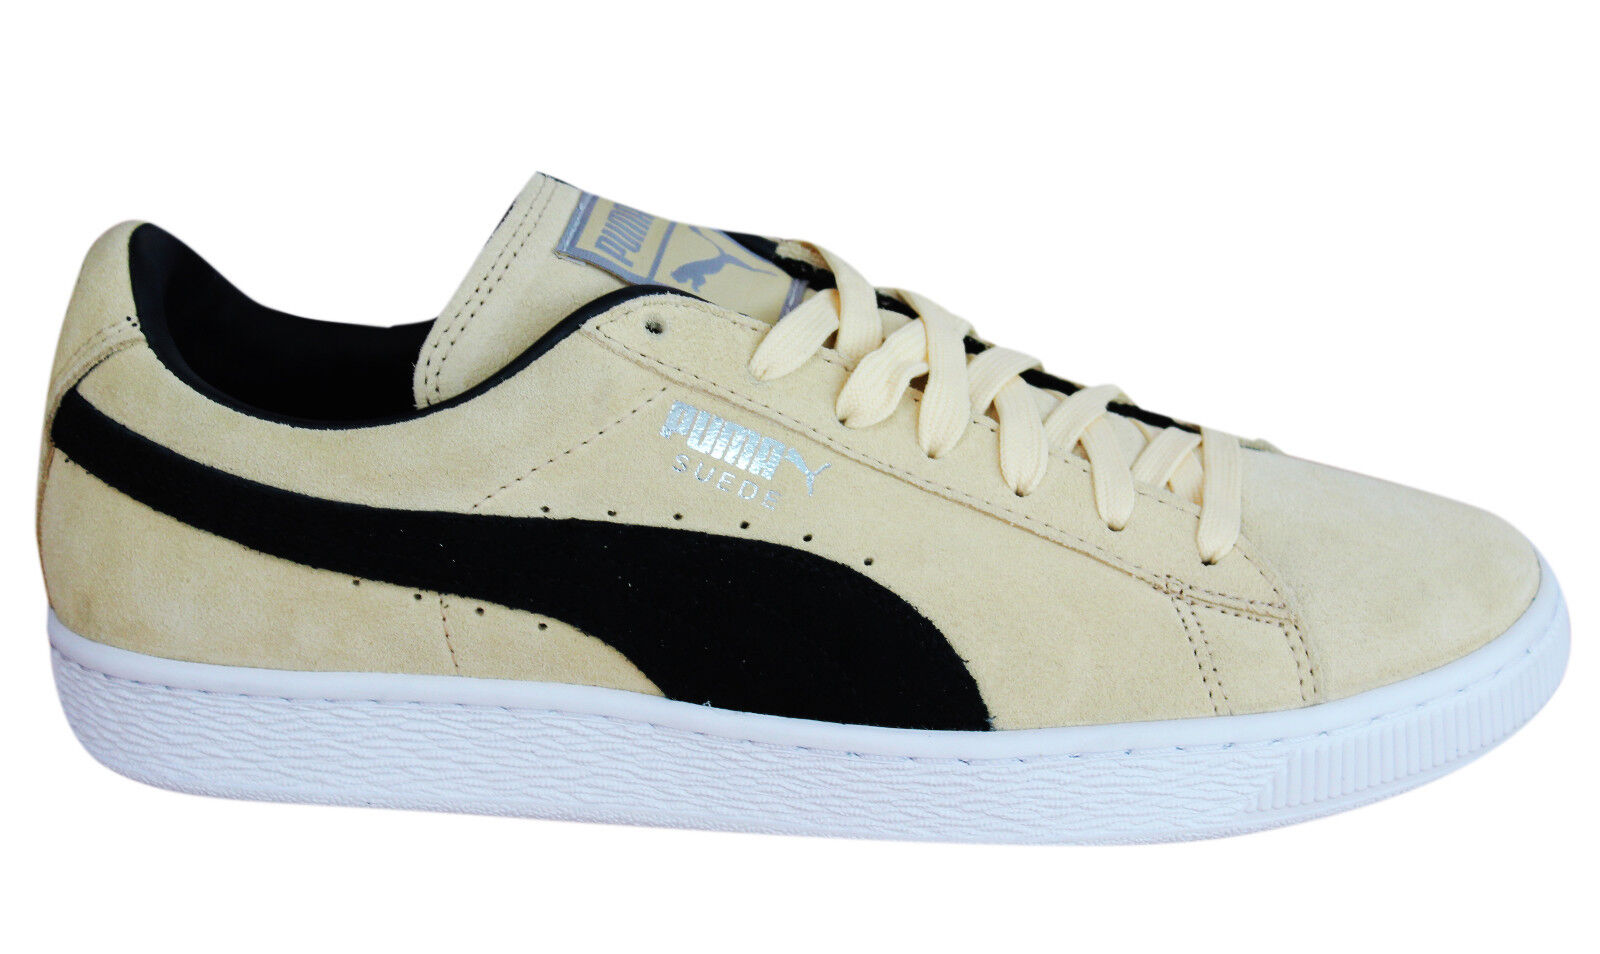 Puma Suede Classics+ Mens Trainers Lace Up Low Shoes Leather 363242 45 M11 Brand discount